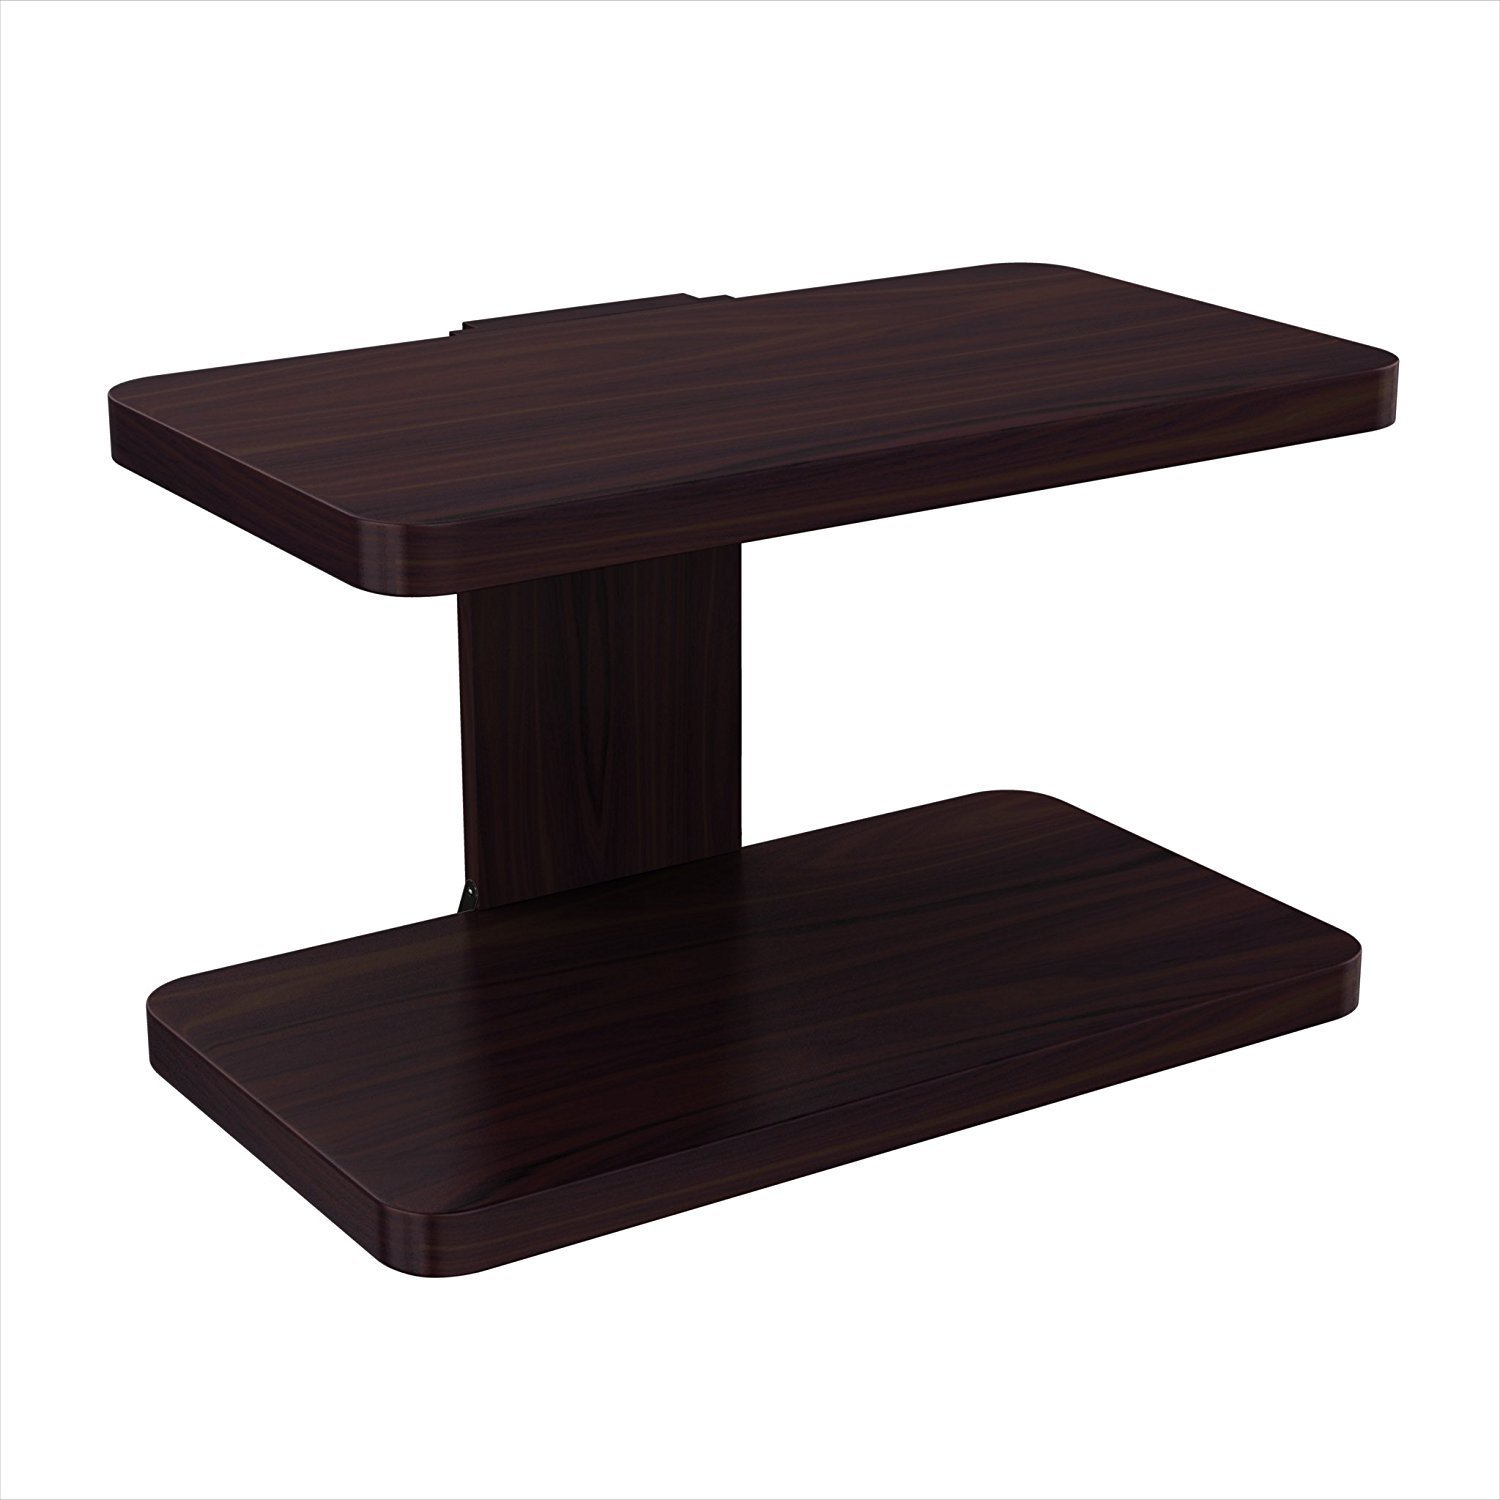 Shop Wall Mount Espresso Wood Small Floating Shelf On Sale Overstock 14578260